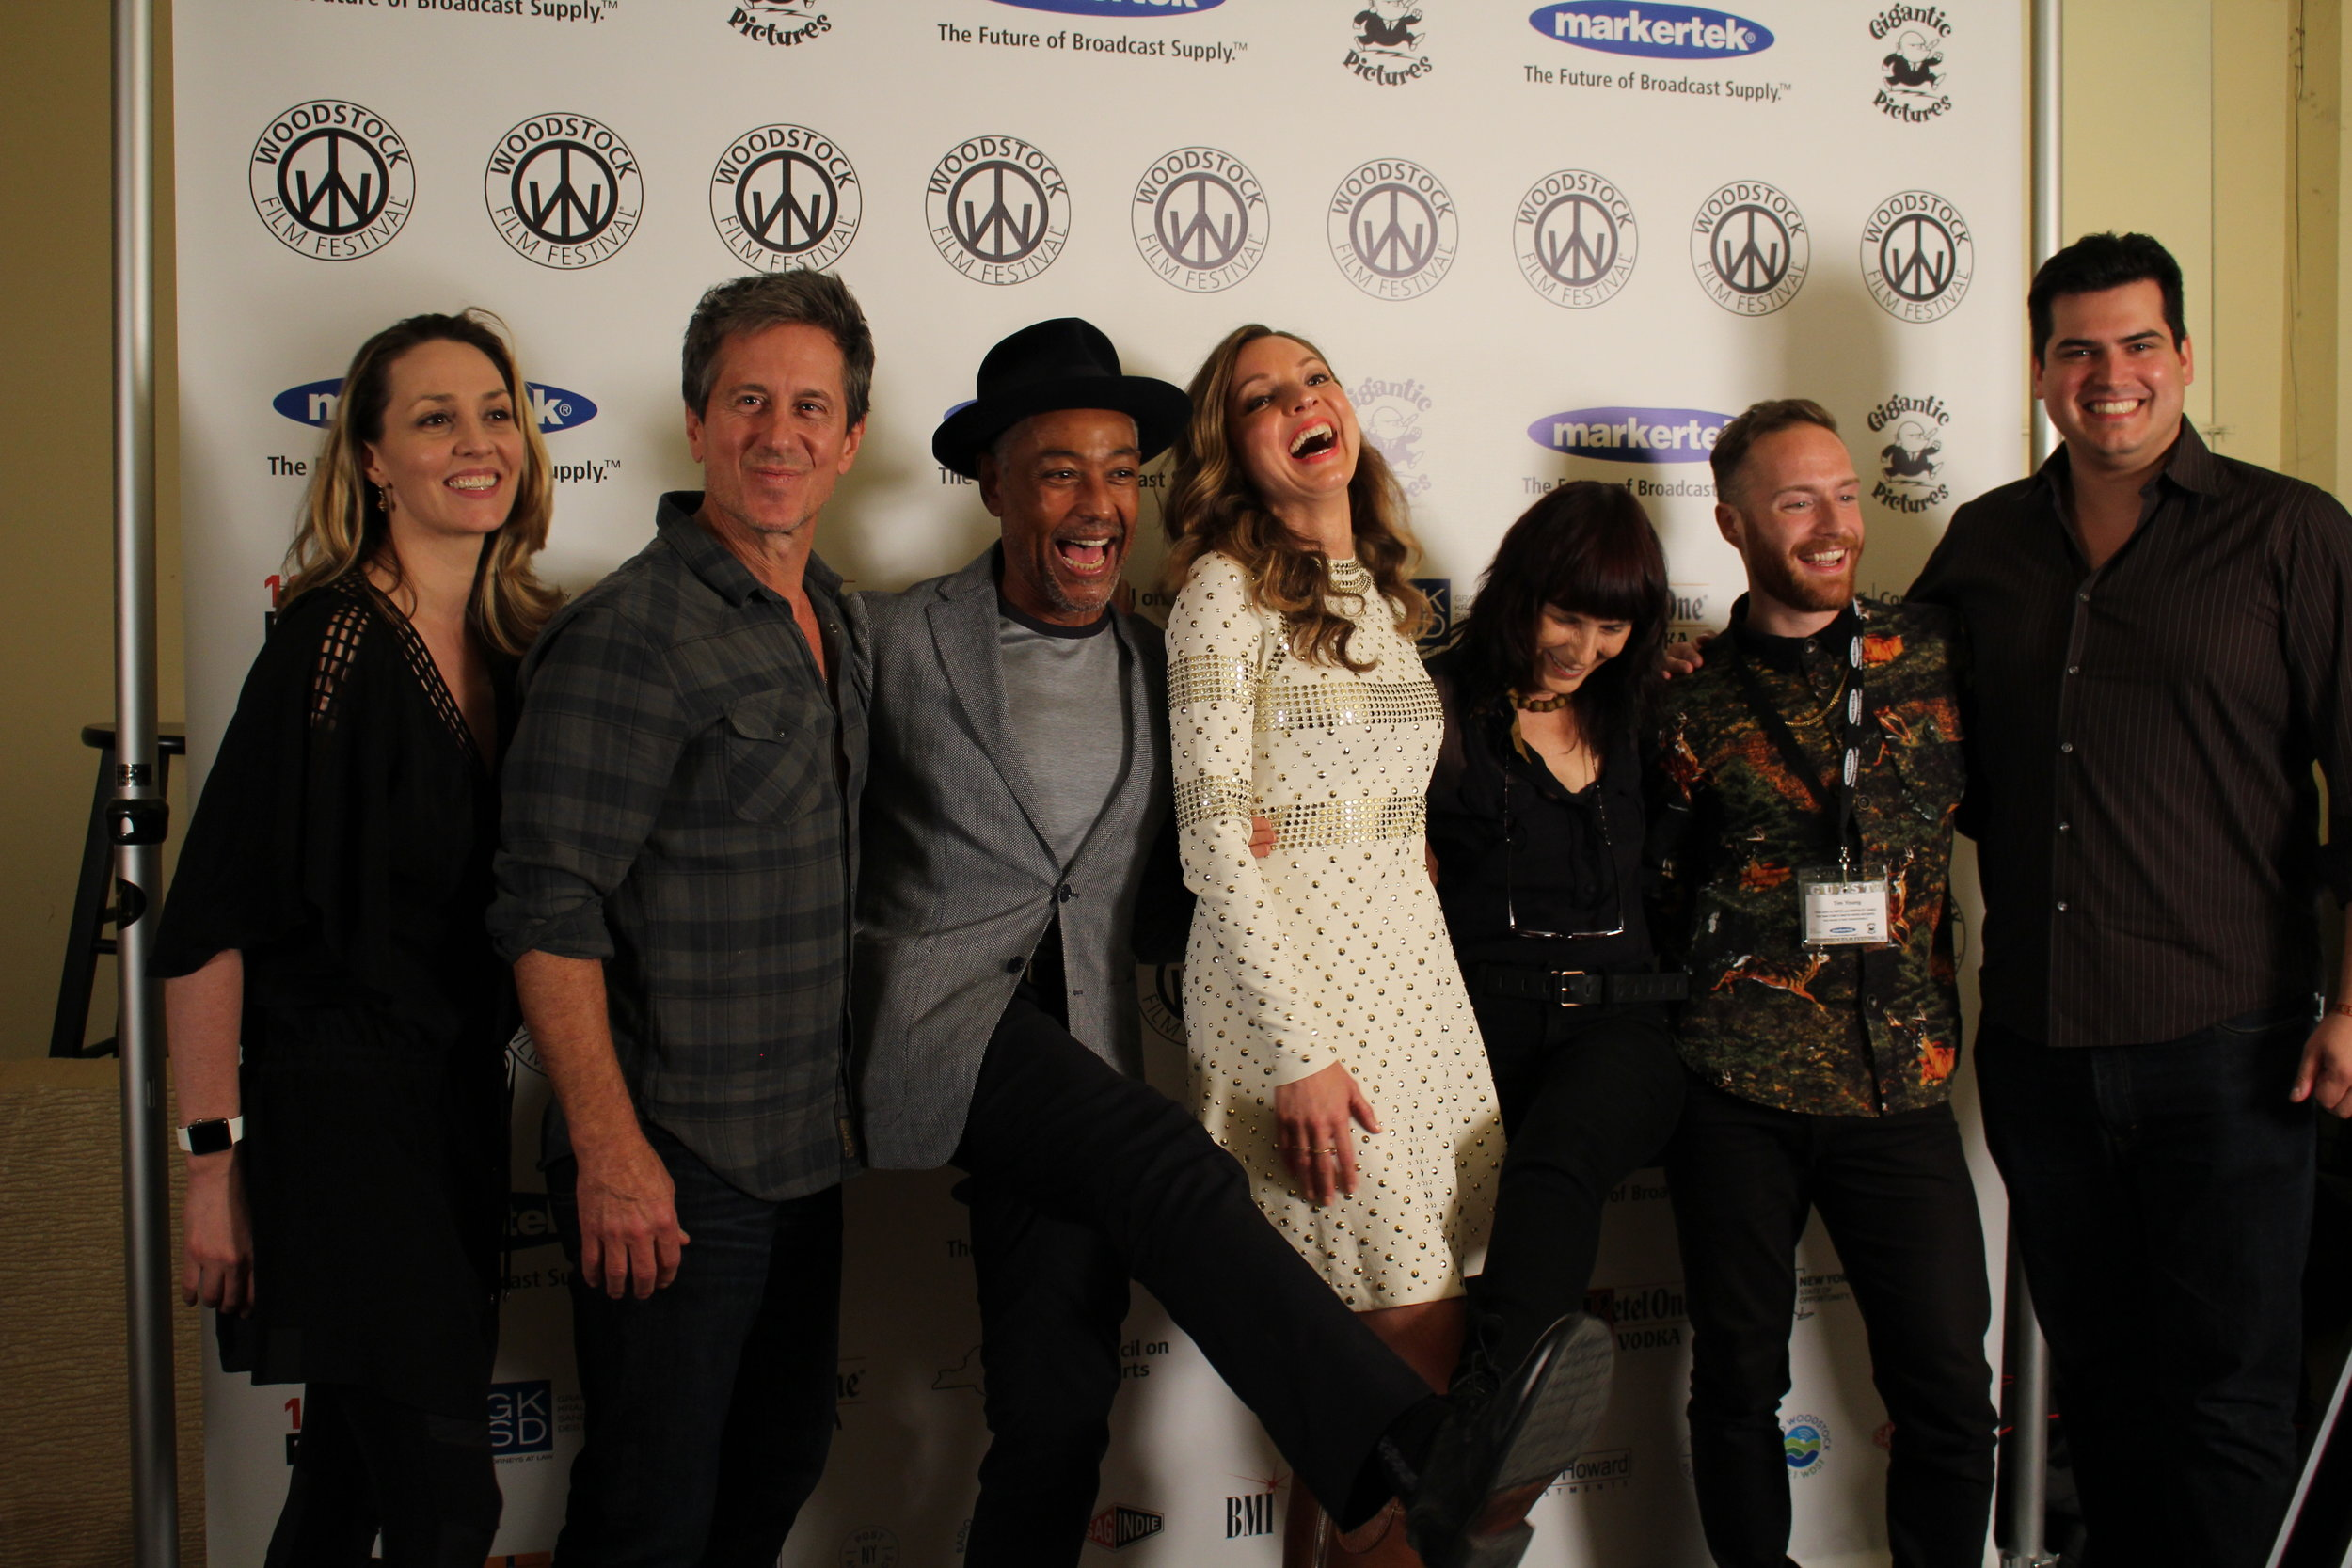 Michael Berry, Giancarlo Esposito, Sarah Joy Miller, Meira Blaustein and Tim Young2017 Woodstock Film Festival kickoff night performance